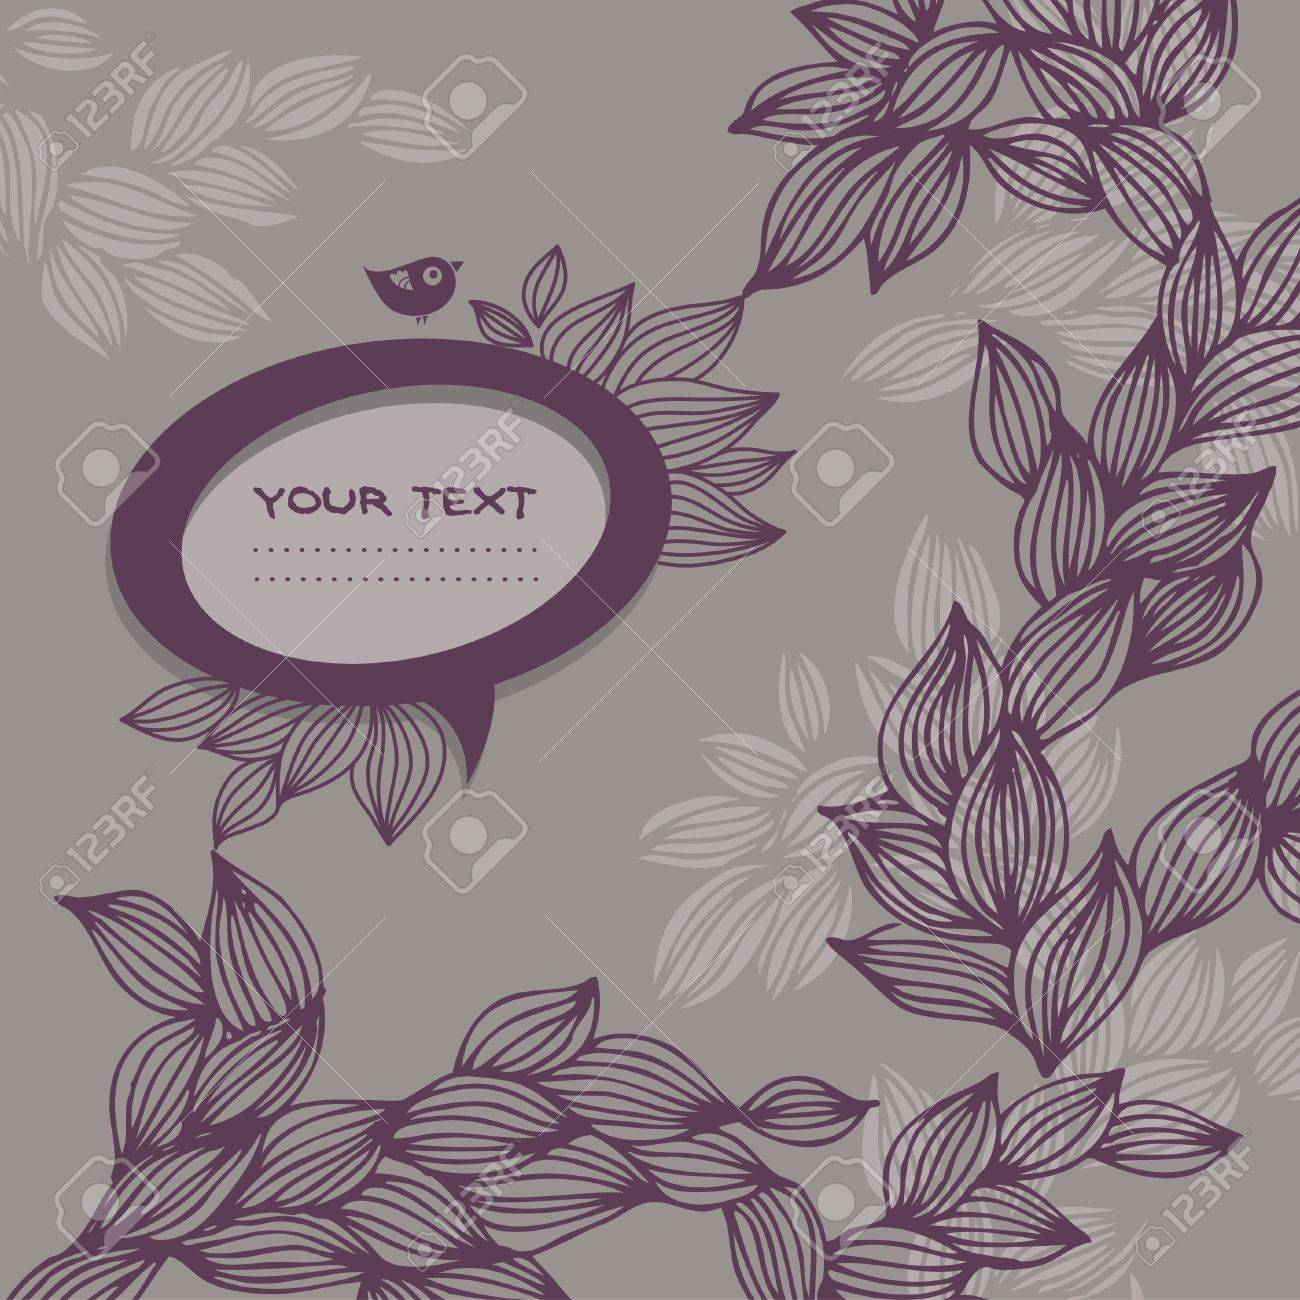 Doodle background with speech bubble frame Stock Vector - 16200909